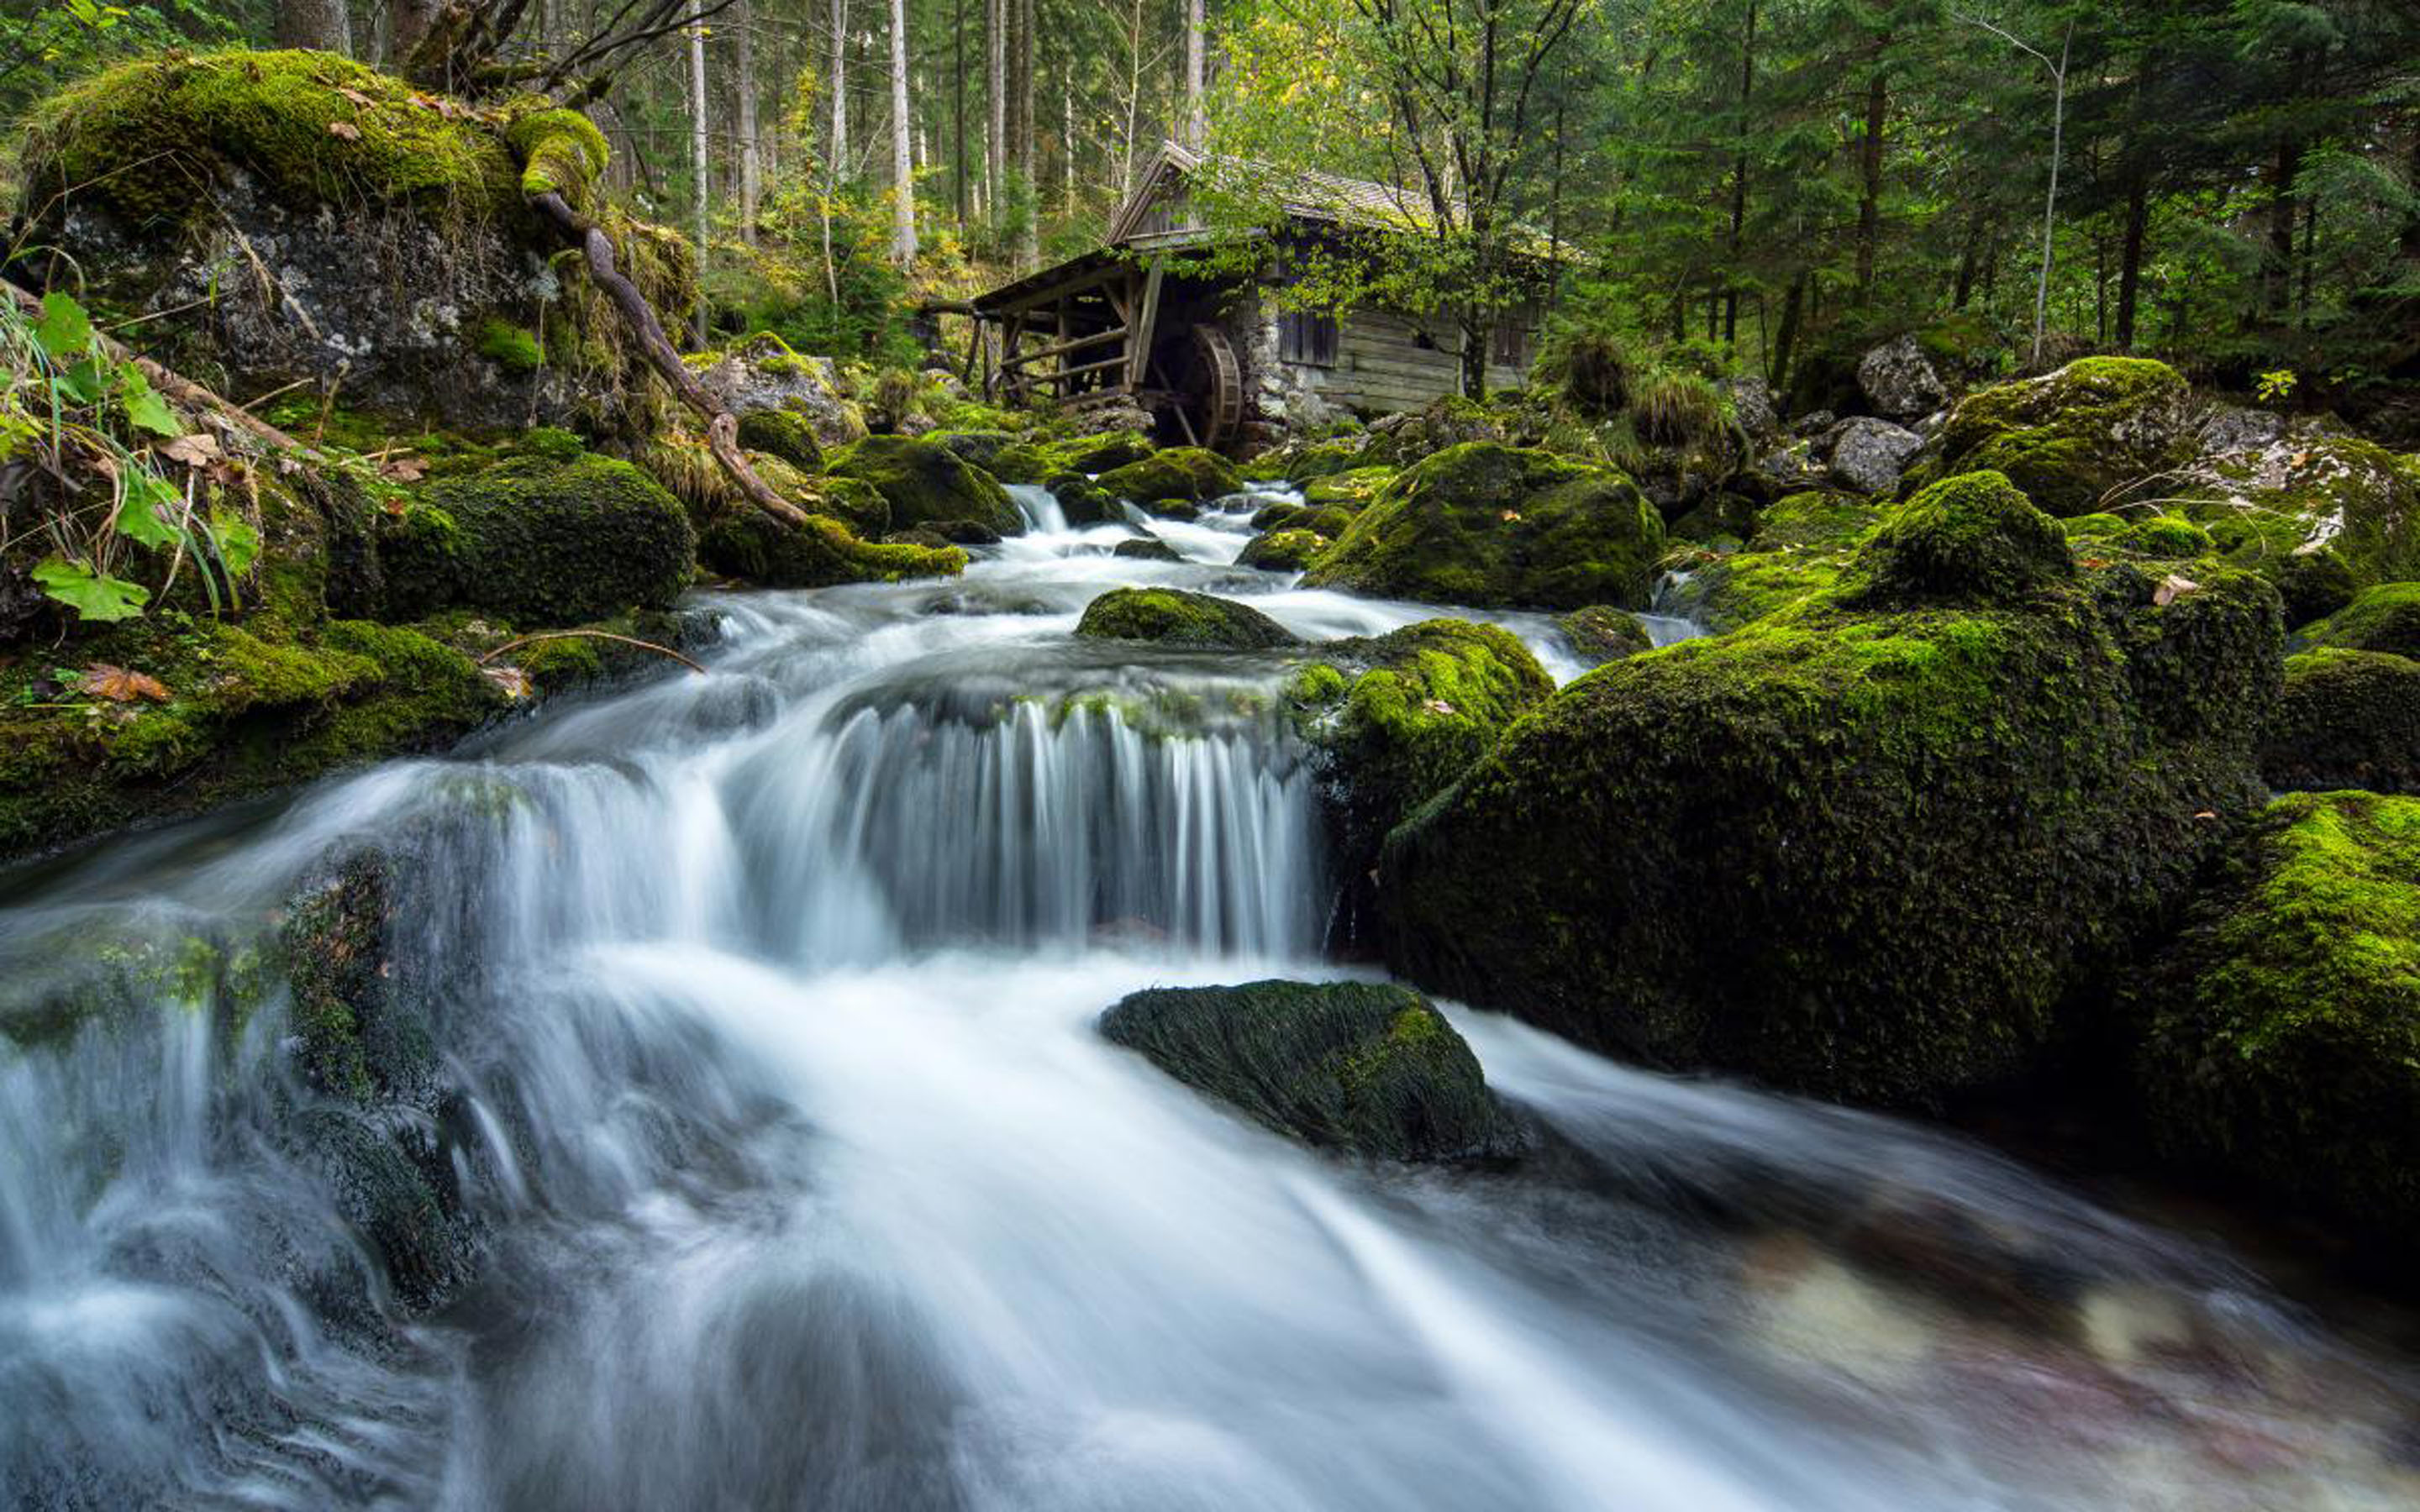 Historic Mill In Golling Salzburg Mountain River Waterfalls Rocks With Green Moss Pine Trees